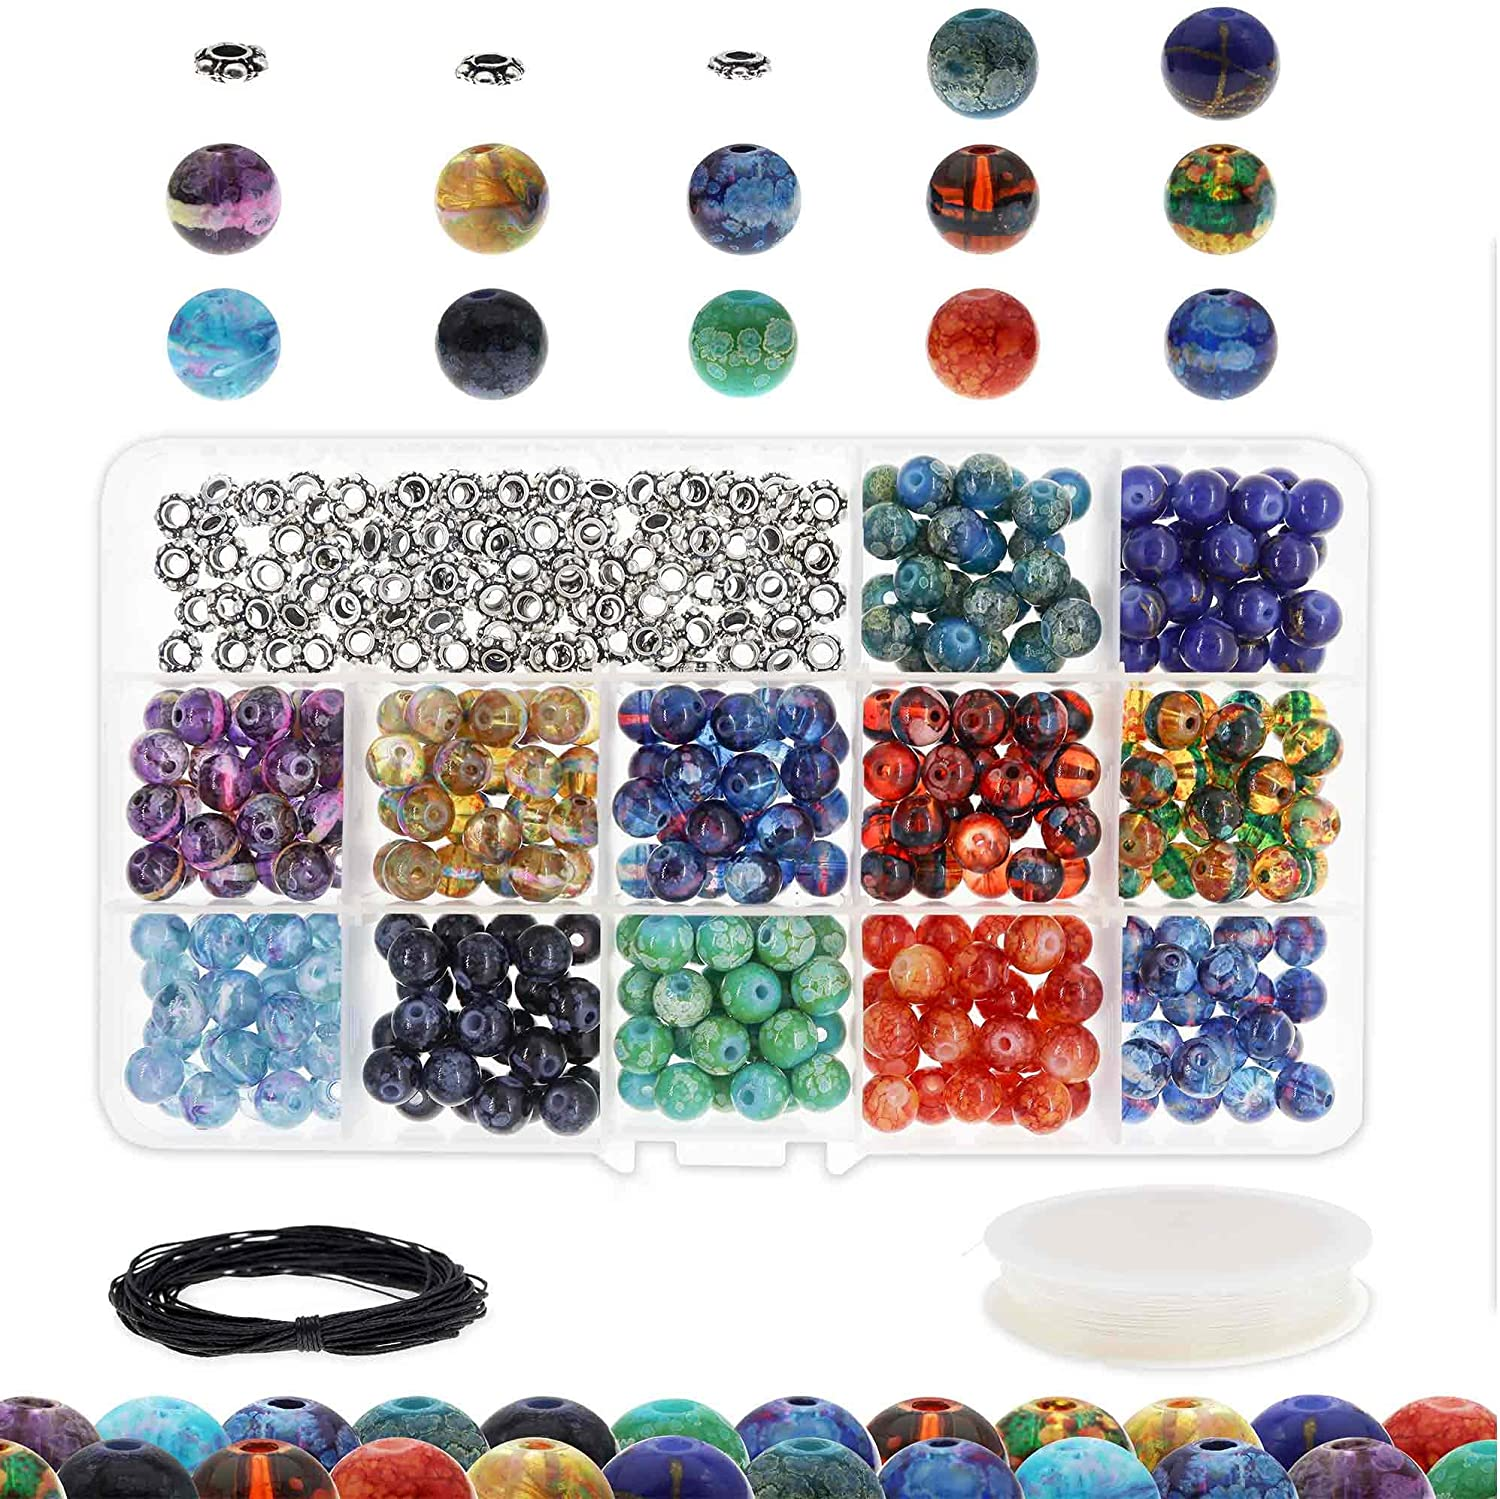 10y Stretch Cord /& 10 Meters Wax Cord Transparent Handcrafted Glass Round Beads Assortment 8mm Glass Bead Kit w// 100 Metal Silver Spacers 300 Splatter Glass Beads for Jewelry Making Adults